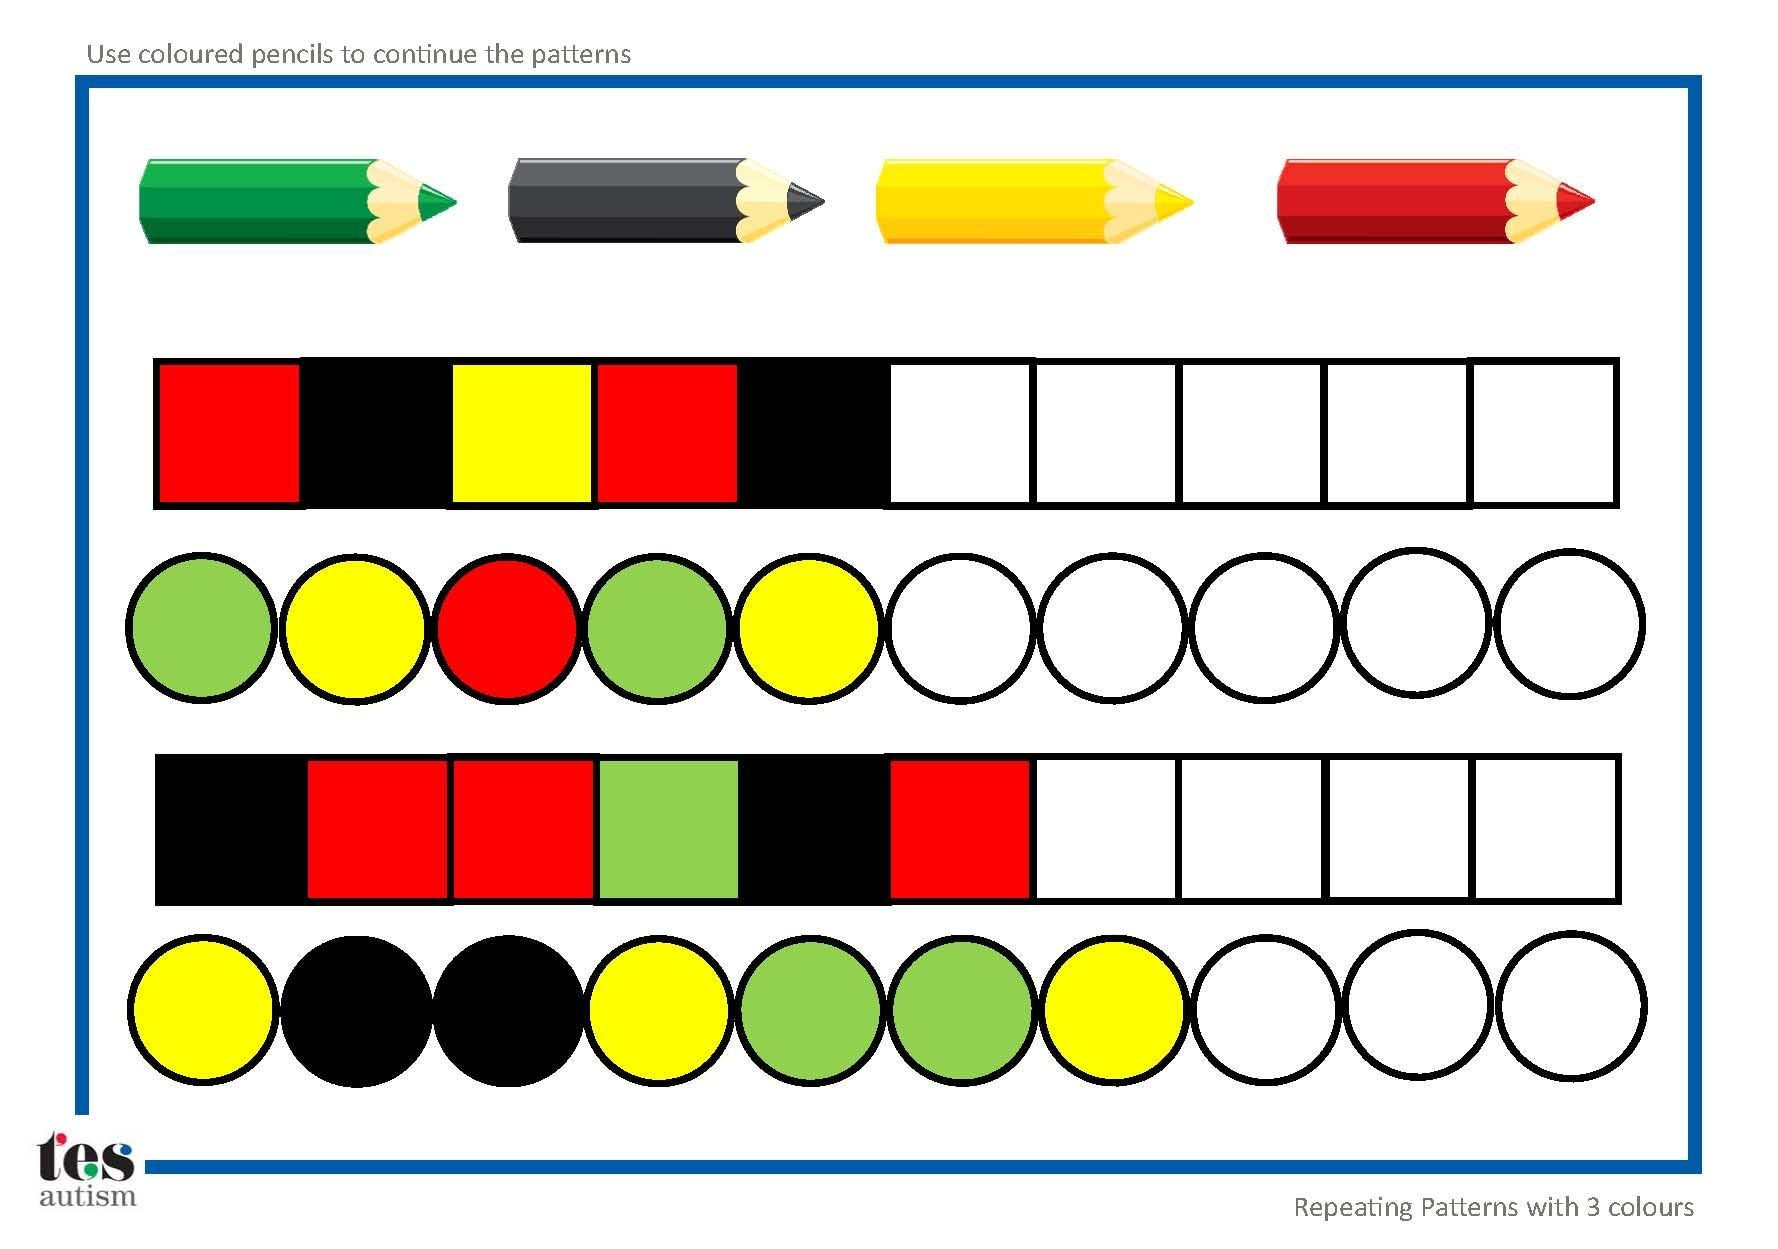 Repeating Patterns Worksheets Repeating Patterns with 3 Colours 4 Worksheet Activities